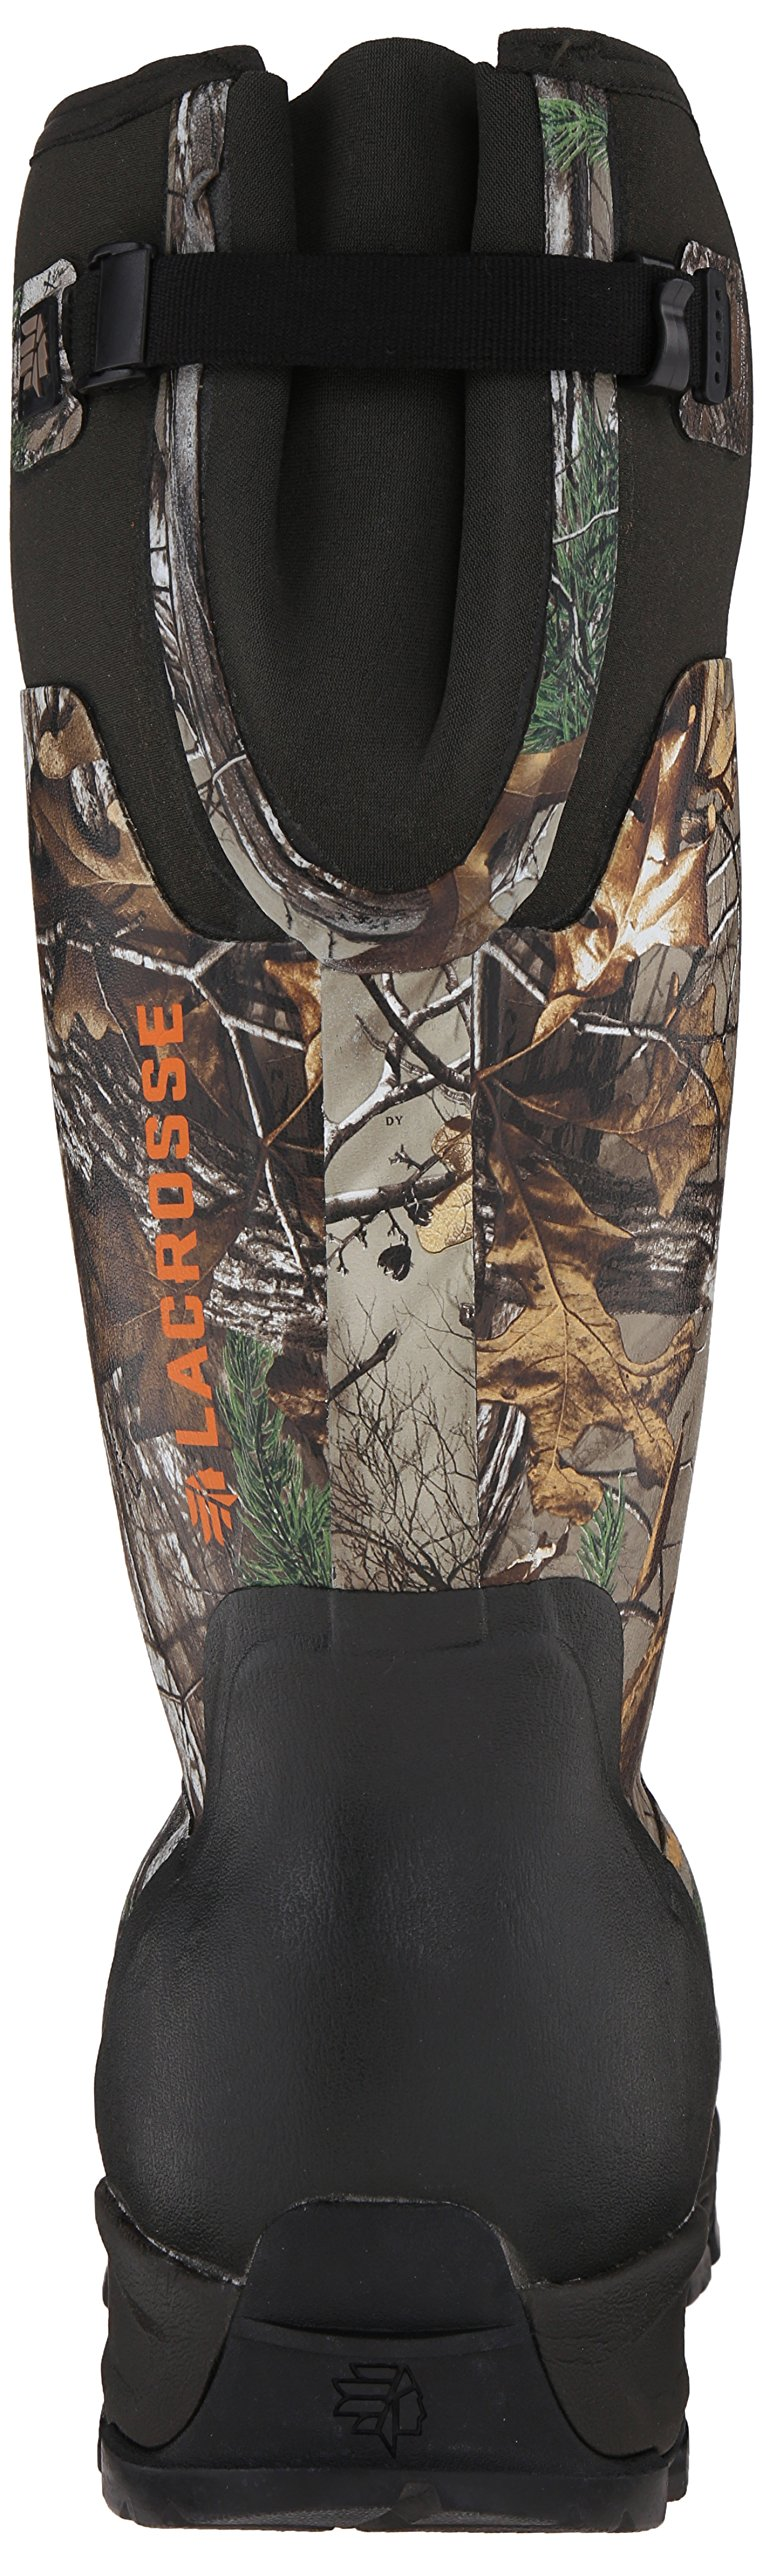 "LaCrosse Men's Alphaburly Pro 18"" 1600G Hunting Boot,Realtree Xtra,11 M US by Lacrosse (Image #2)"